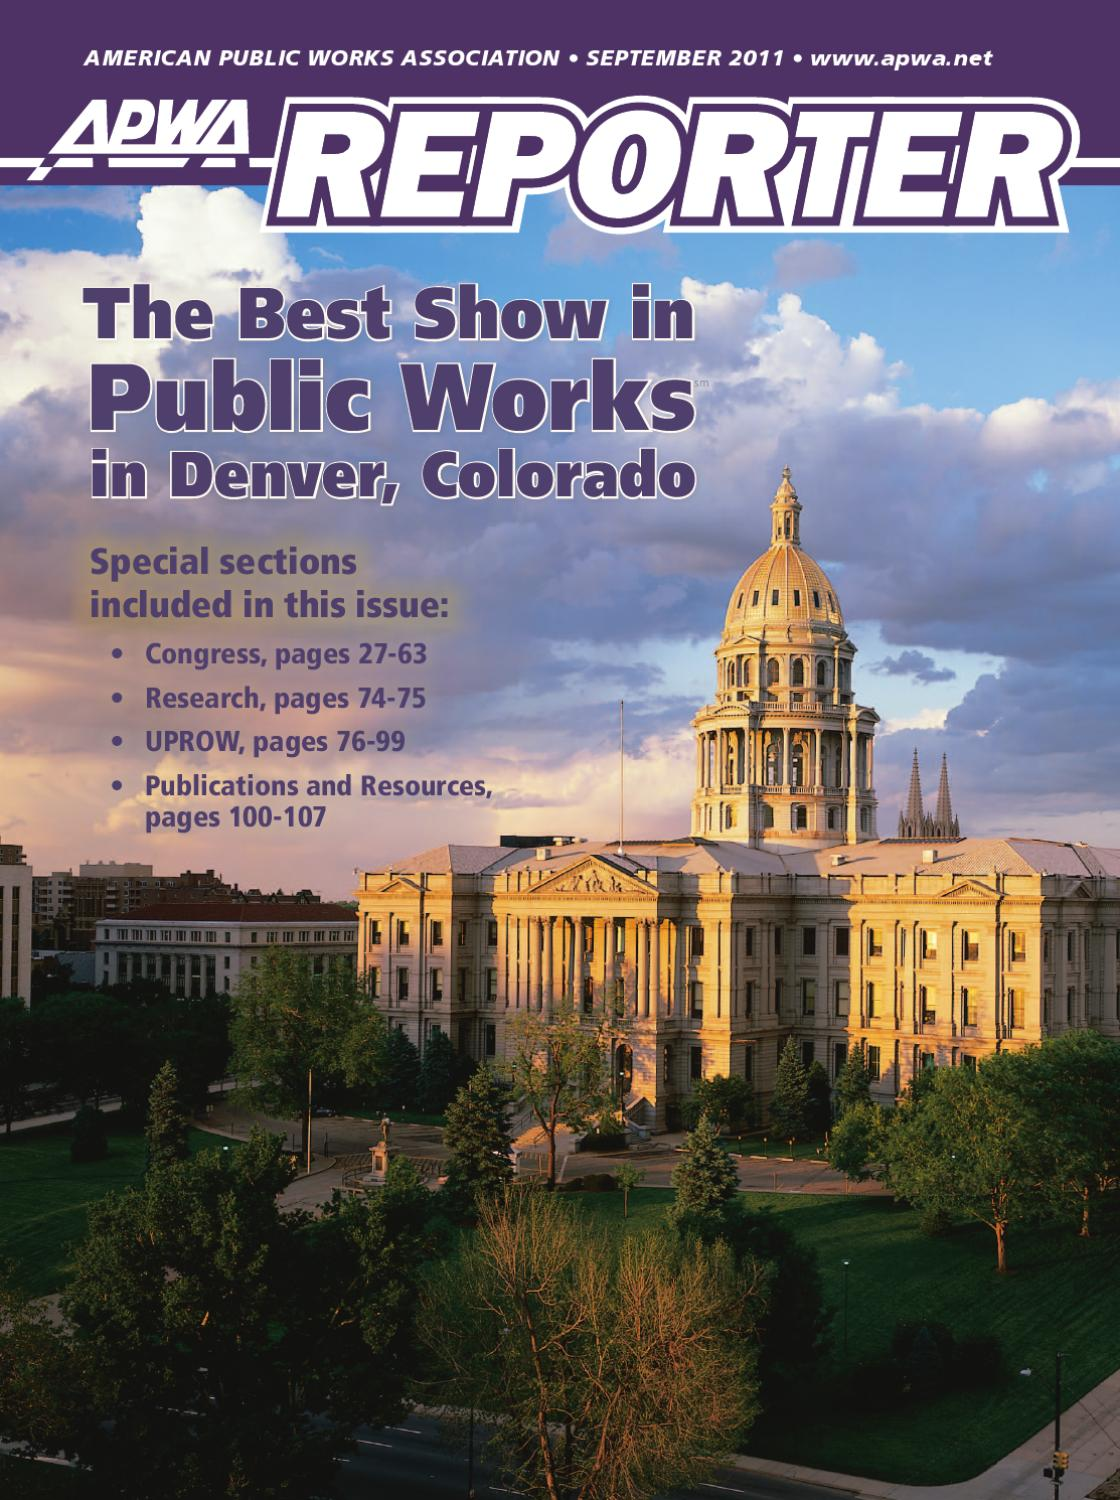 Apwa reporter september 2011 issue by american public works apwa reporter september 2011 issue by american public works association issuu fandeluxe Choice Image